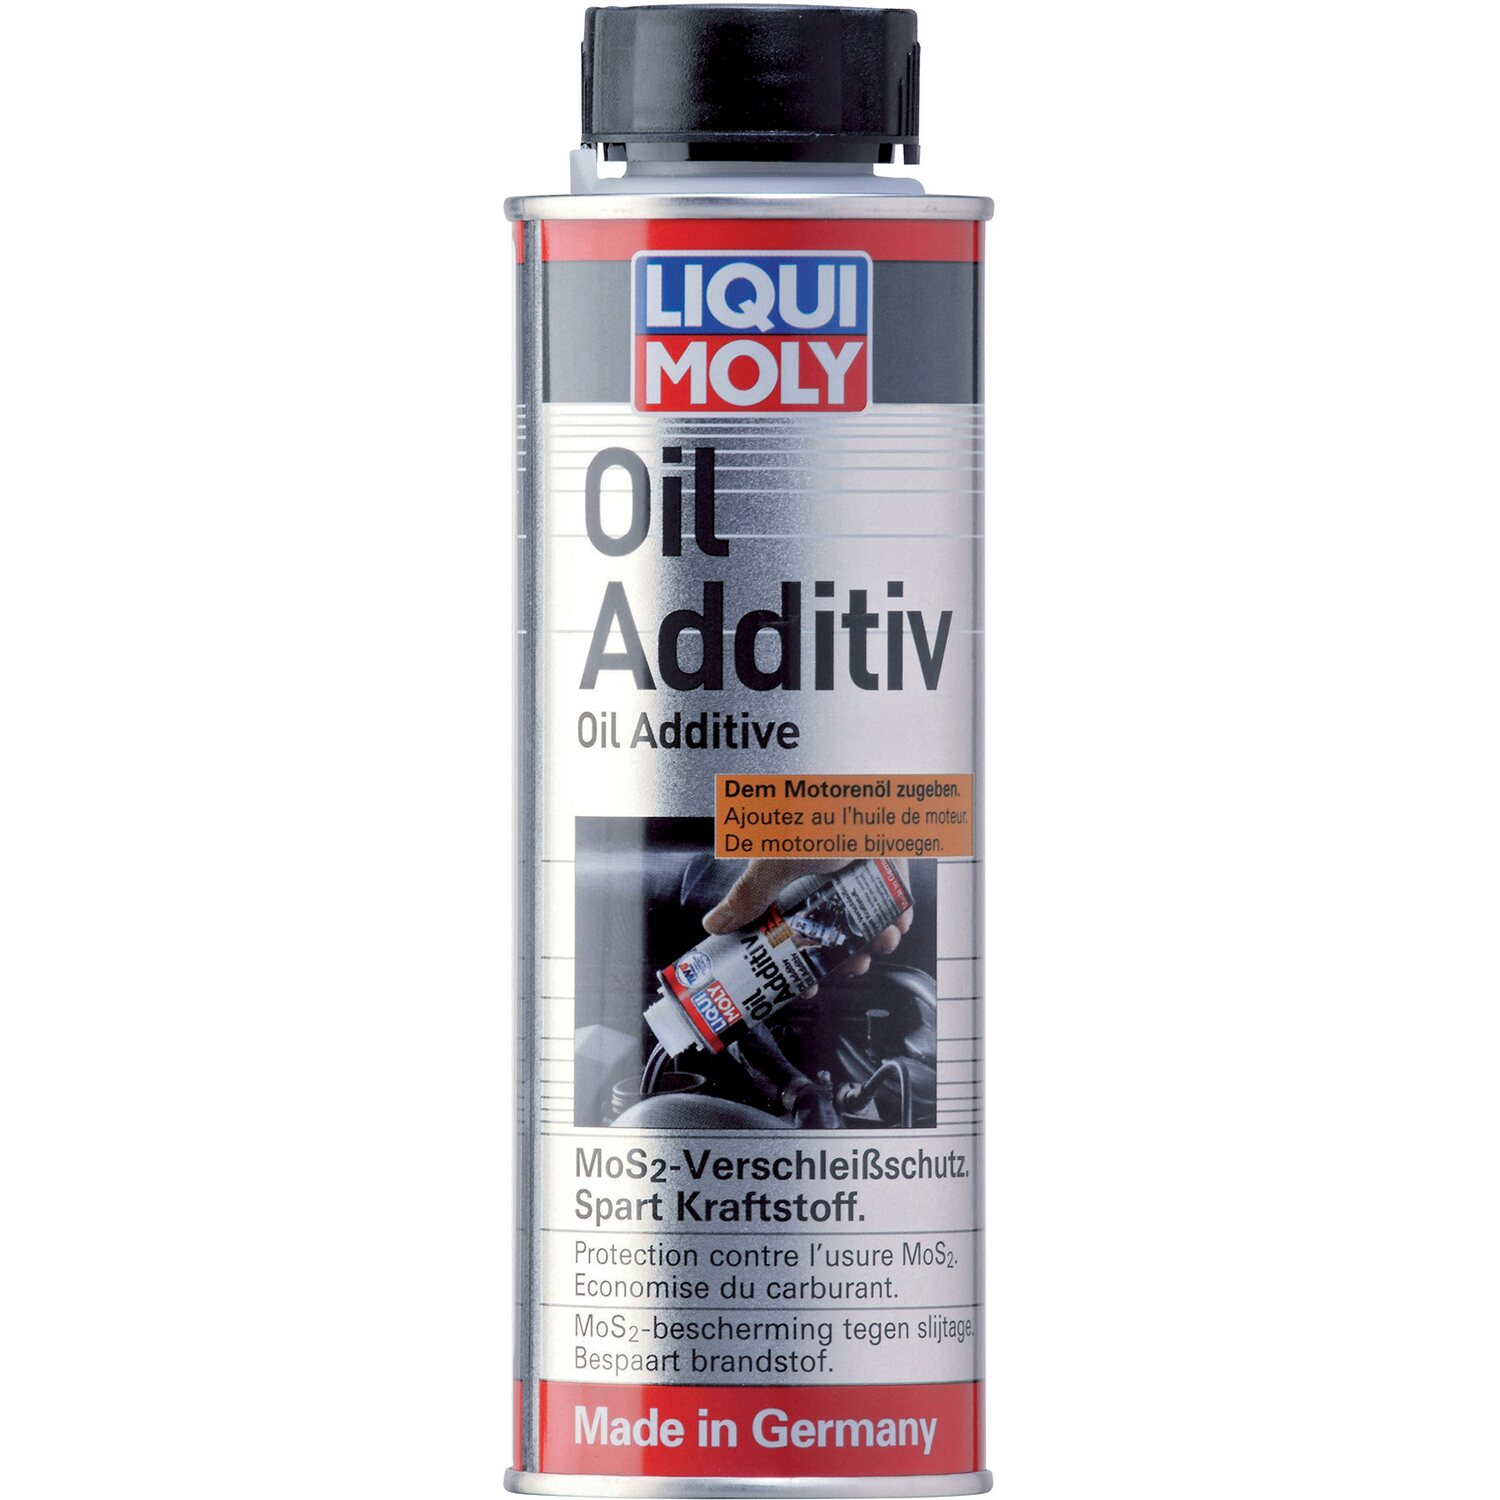 liqui moly l additiv 200 ml kaufen bei obi. Black Bedroom Furniture Sets. Home Design Ideas